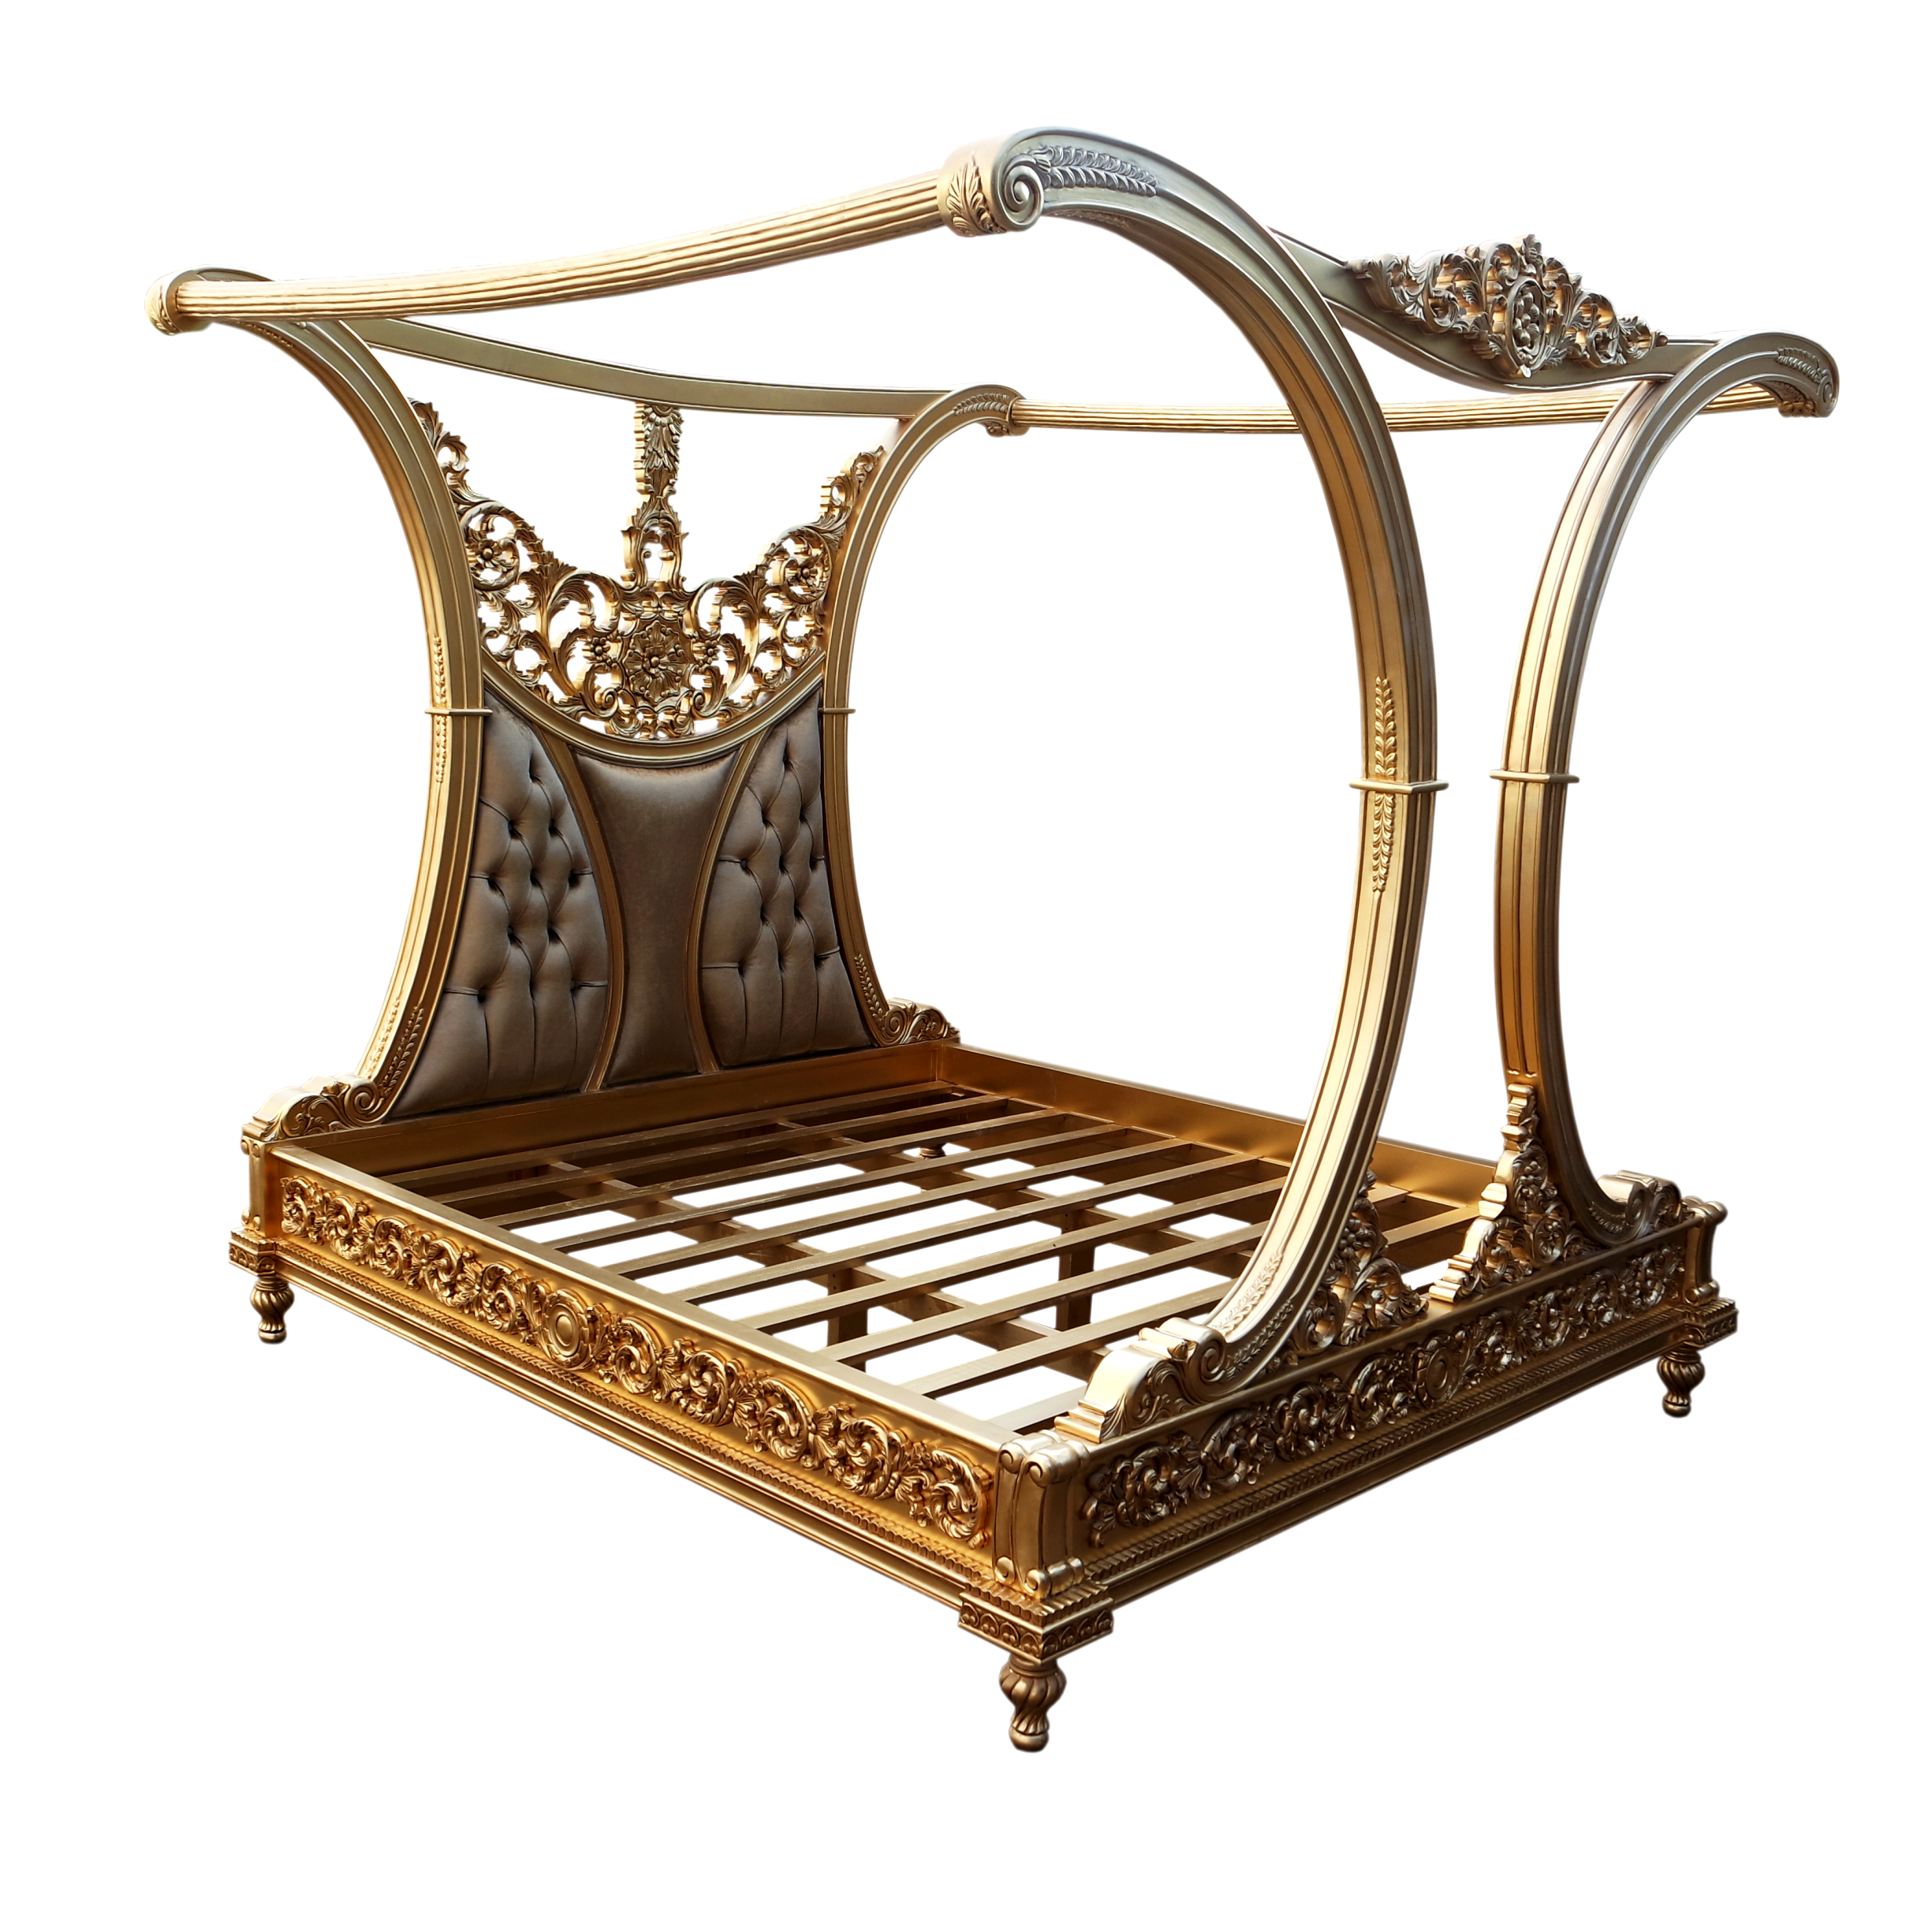 Wooden Furniture Royal Carved Canopy Bed